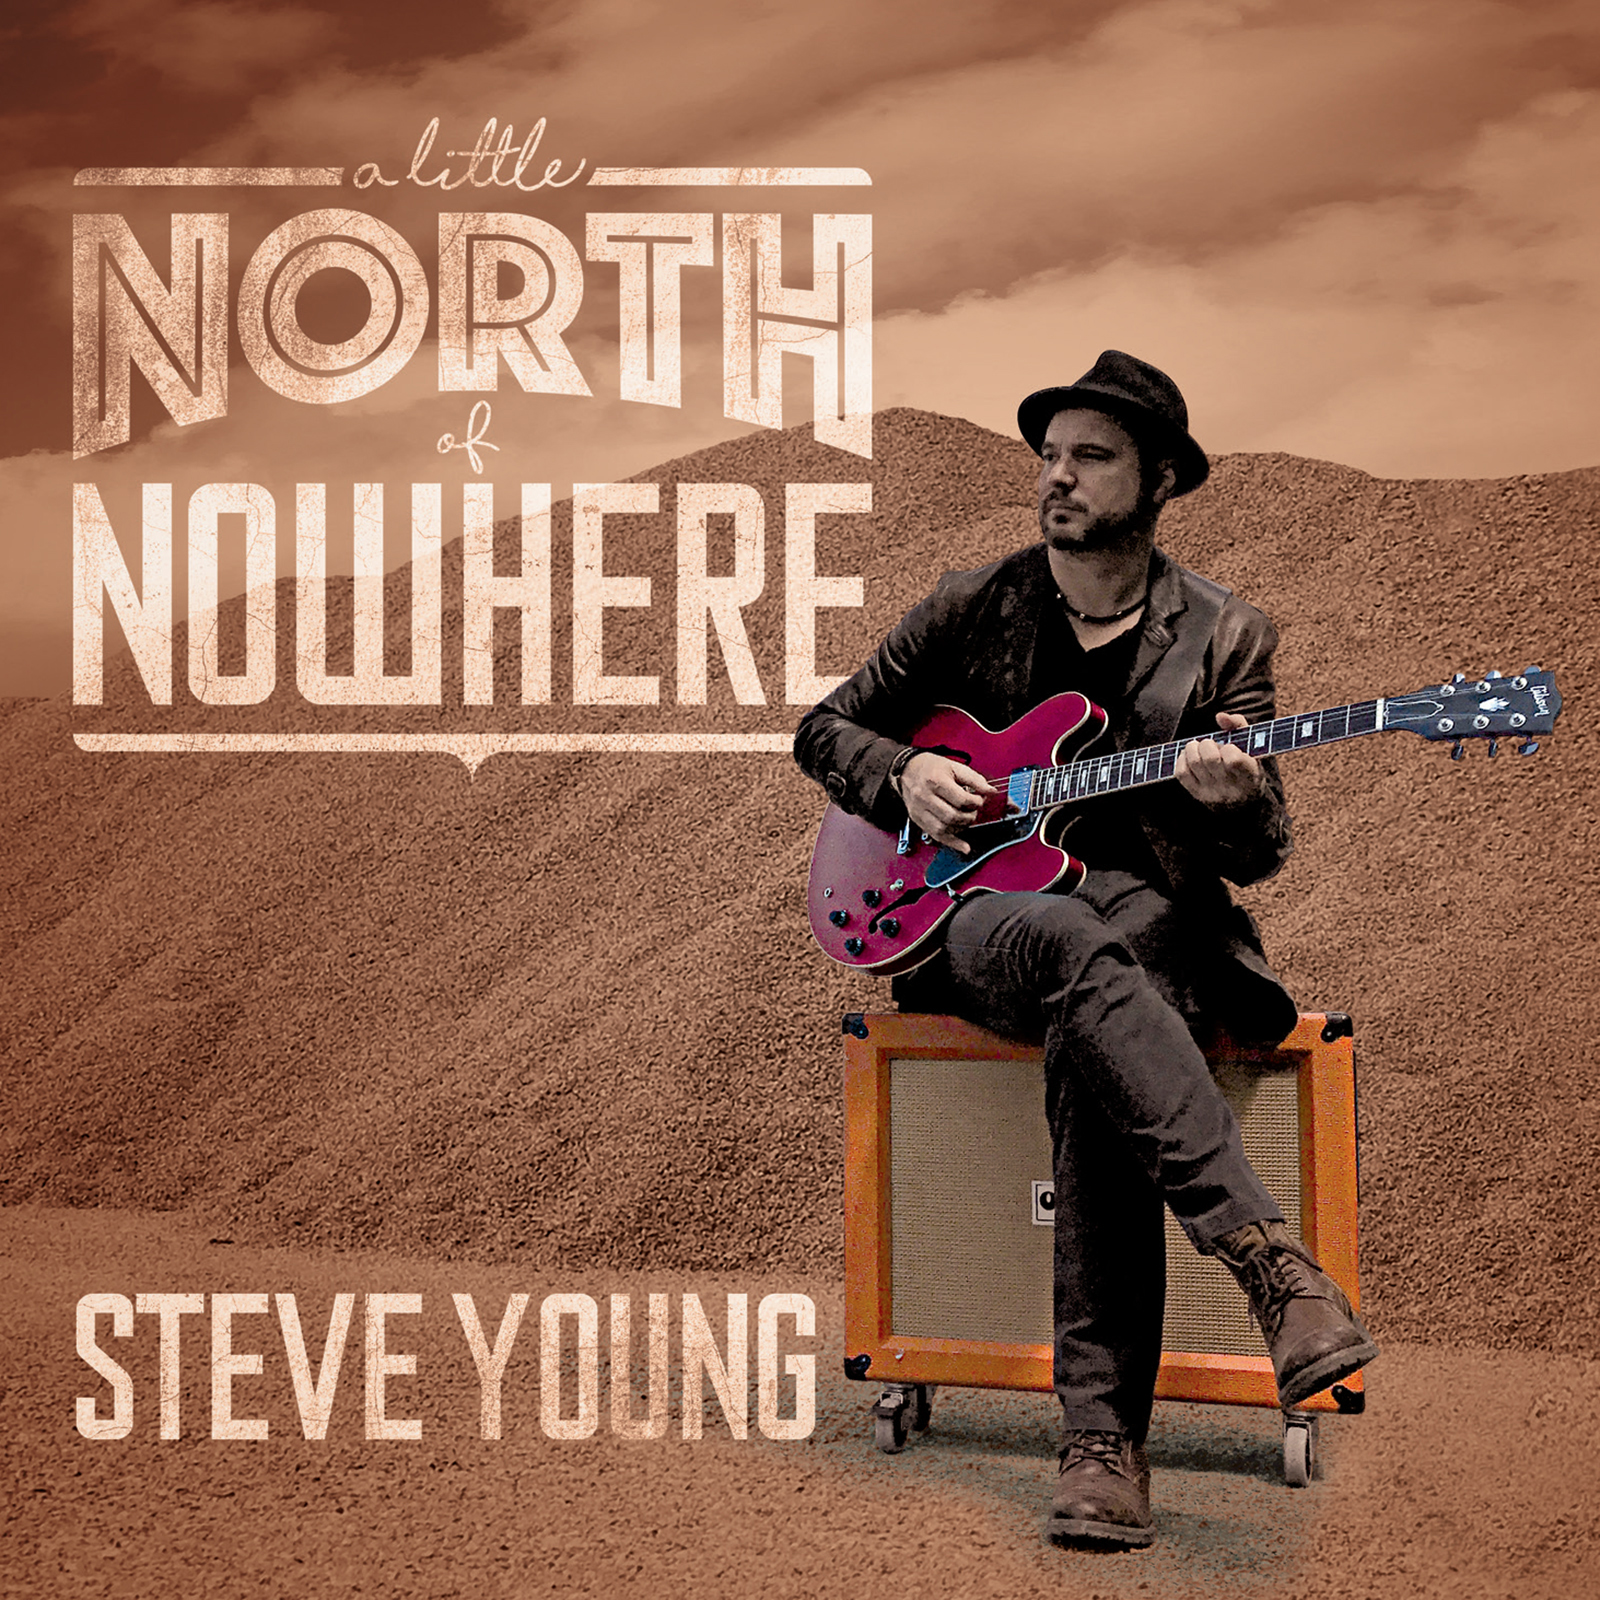 A Little North Of Nowhere (Deluxe Double CD) - Steve Young